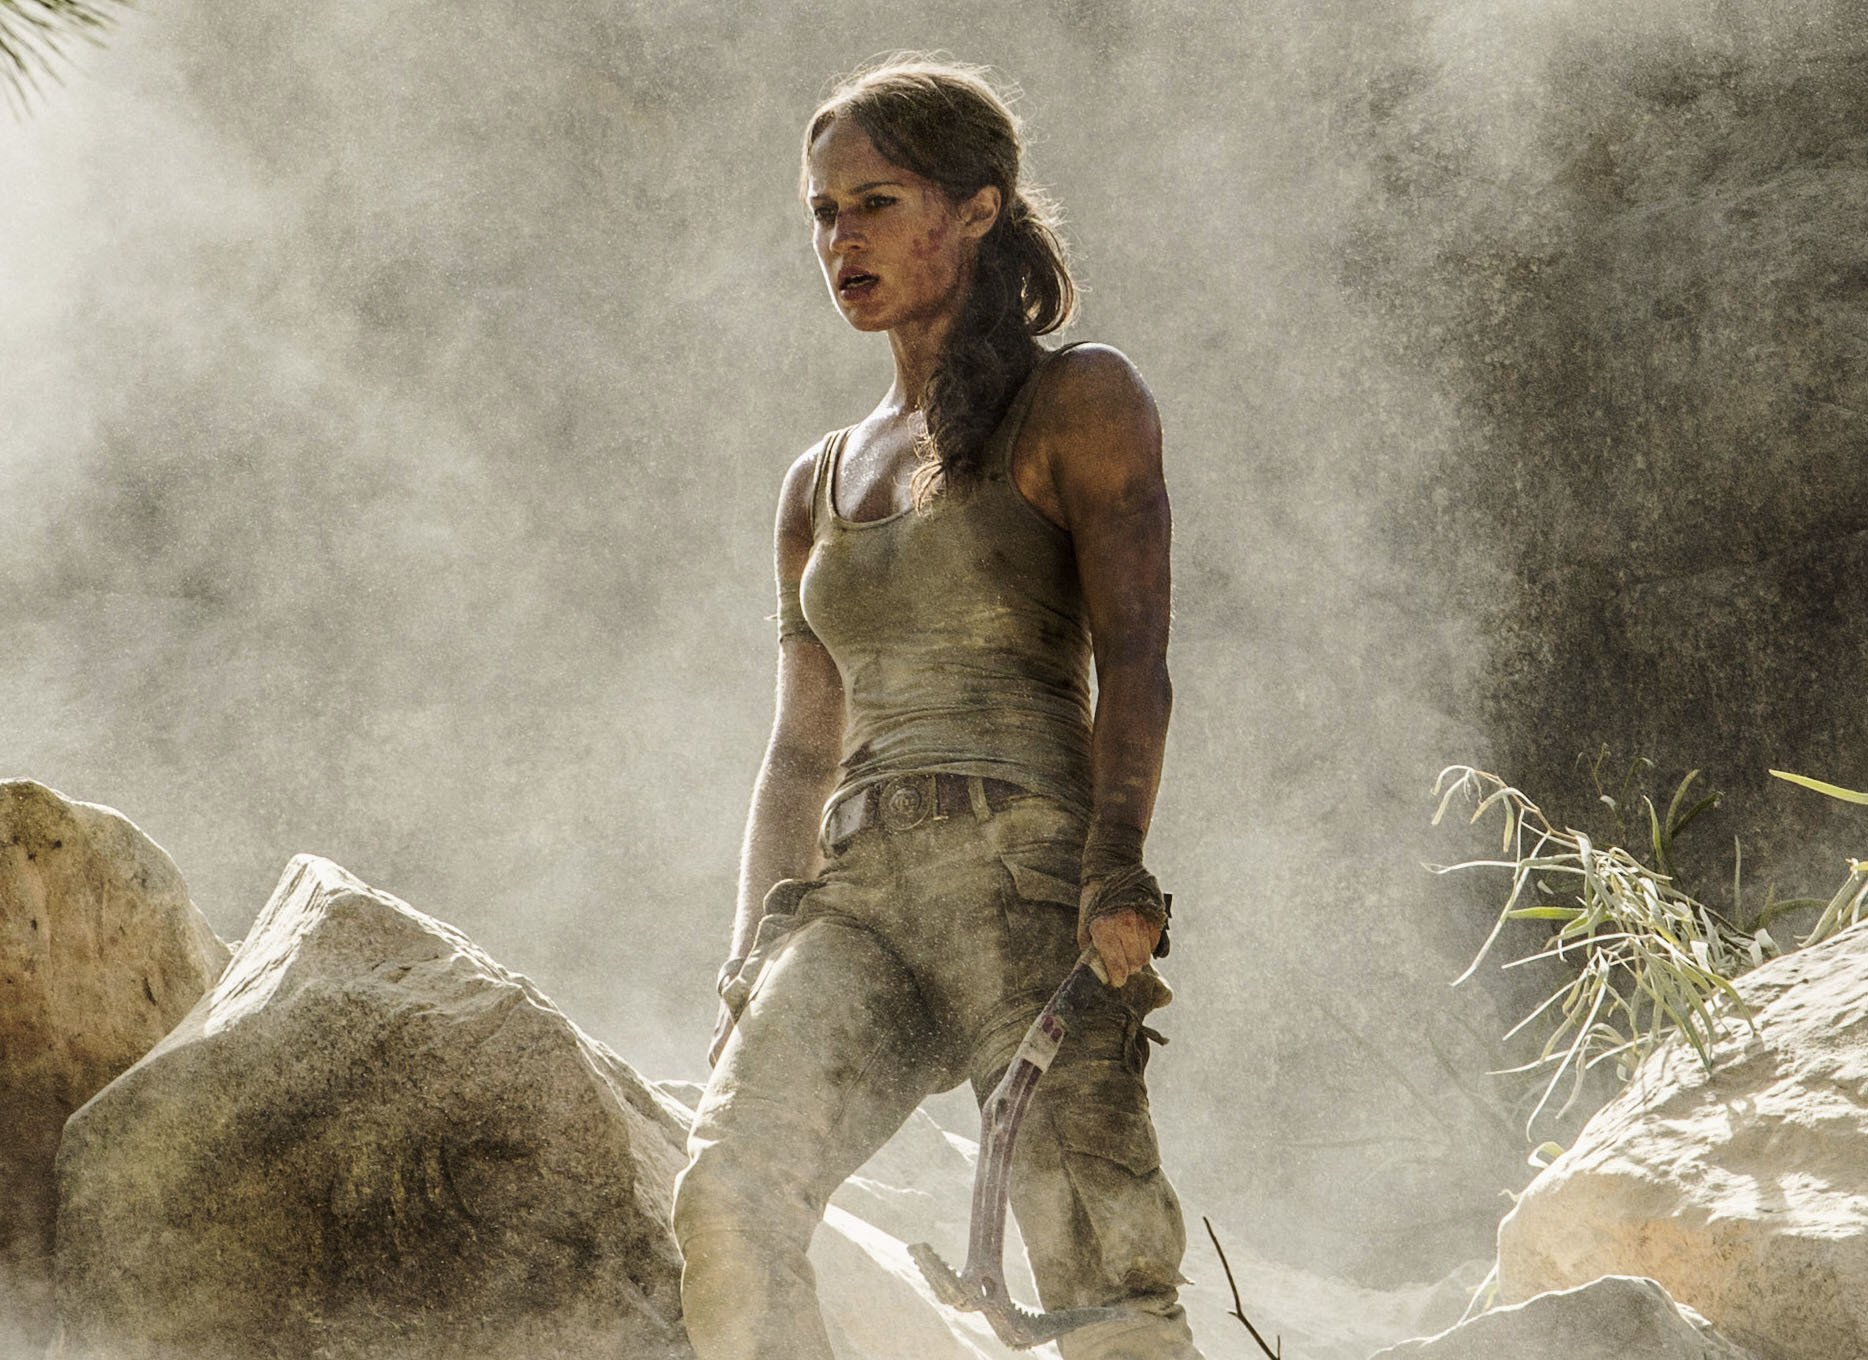 """This image released by Warner Bros. Pictures shows Alicia Vikander in a scene from """"Tomb Raider."""" It took weeks of training and plates full of protein to turn former ballerina Alicia Vikander into action star Lara Croft. (Ilze Kitshoff/Warner Bros. Pictures via AP)"""